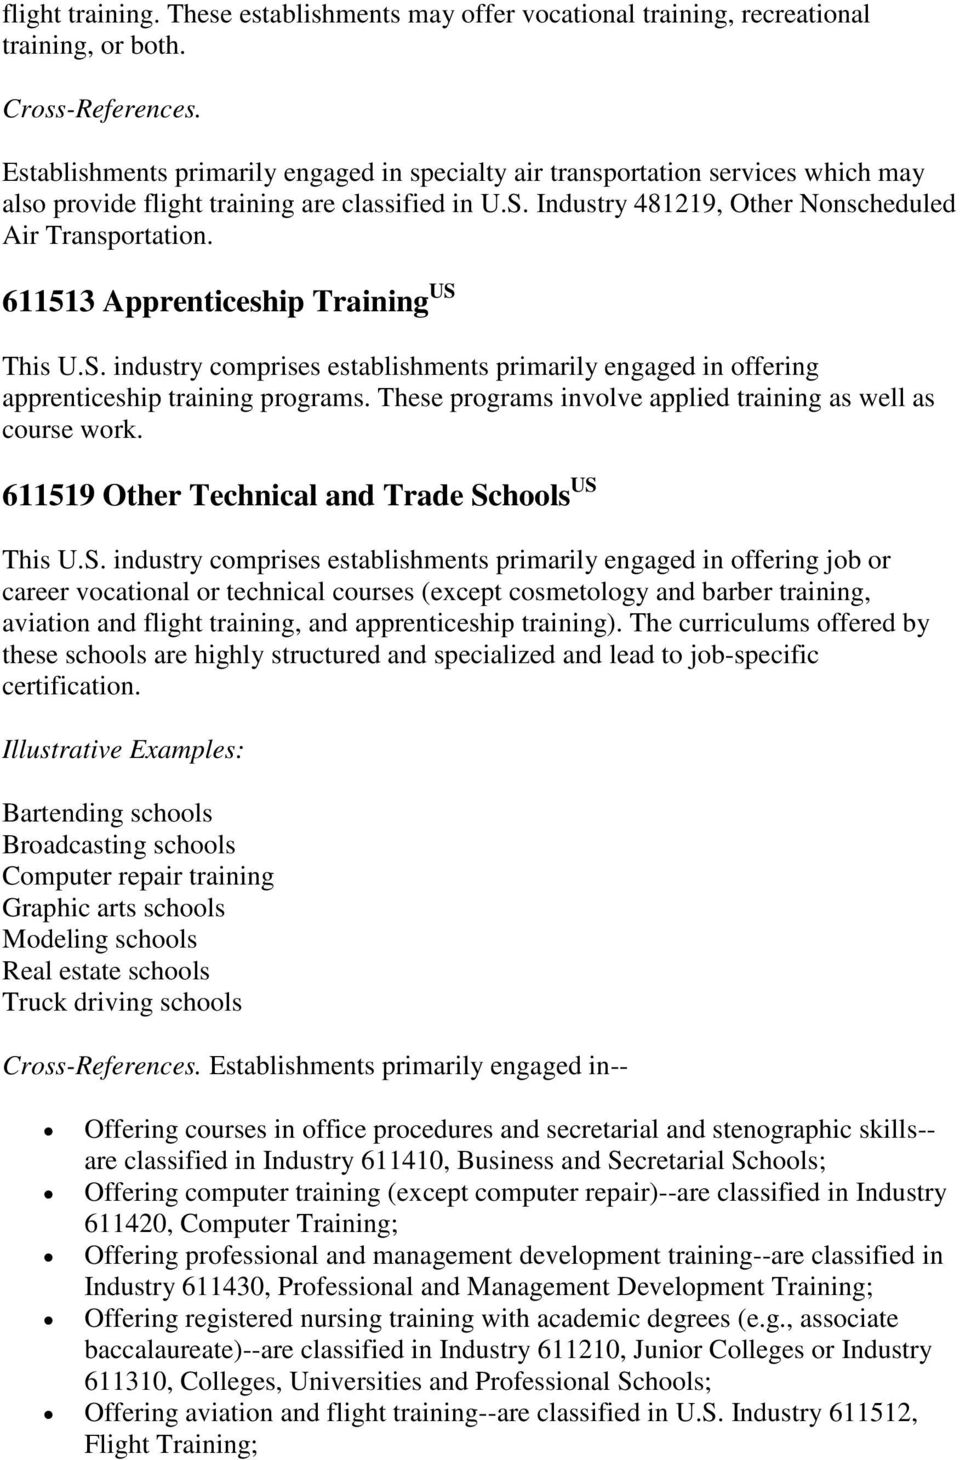 611513 Apprenticeship Training US This U.S. industry comprises establishments primarily engaged in offering apprenticeship training programs.